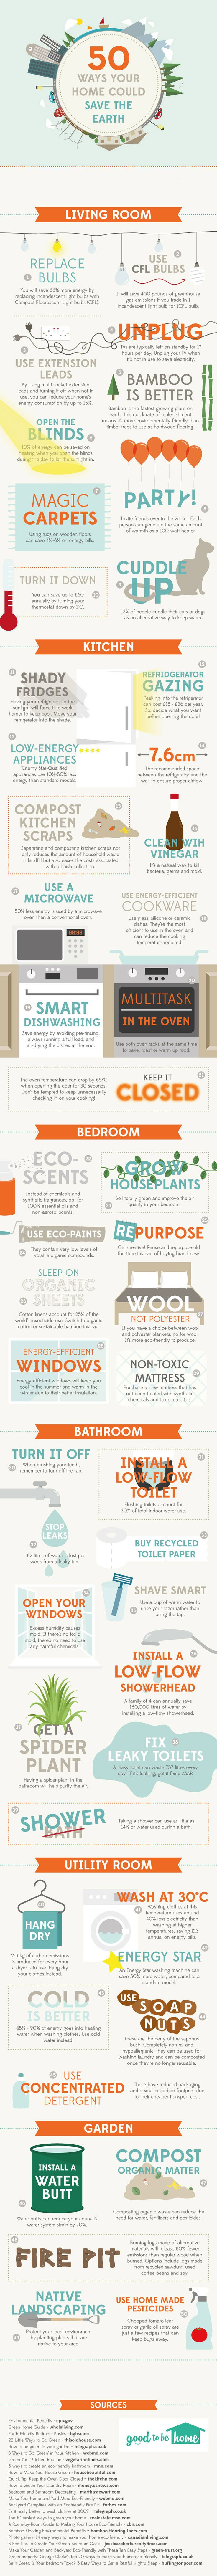 Infographic: 50 ways to help the environment from home - Matador Network